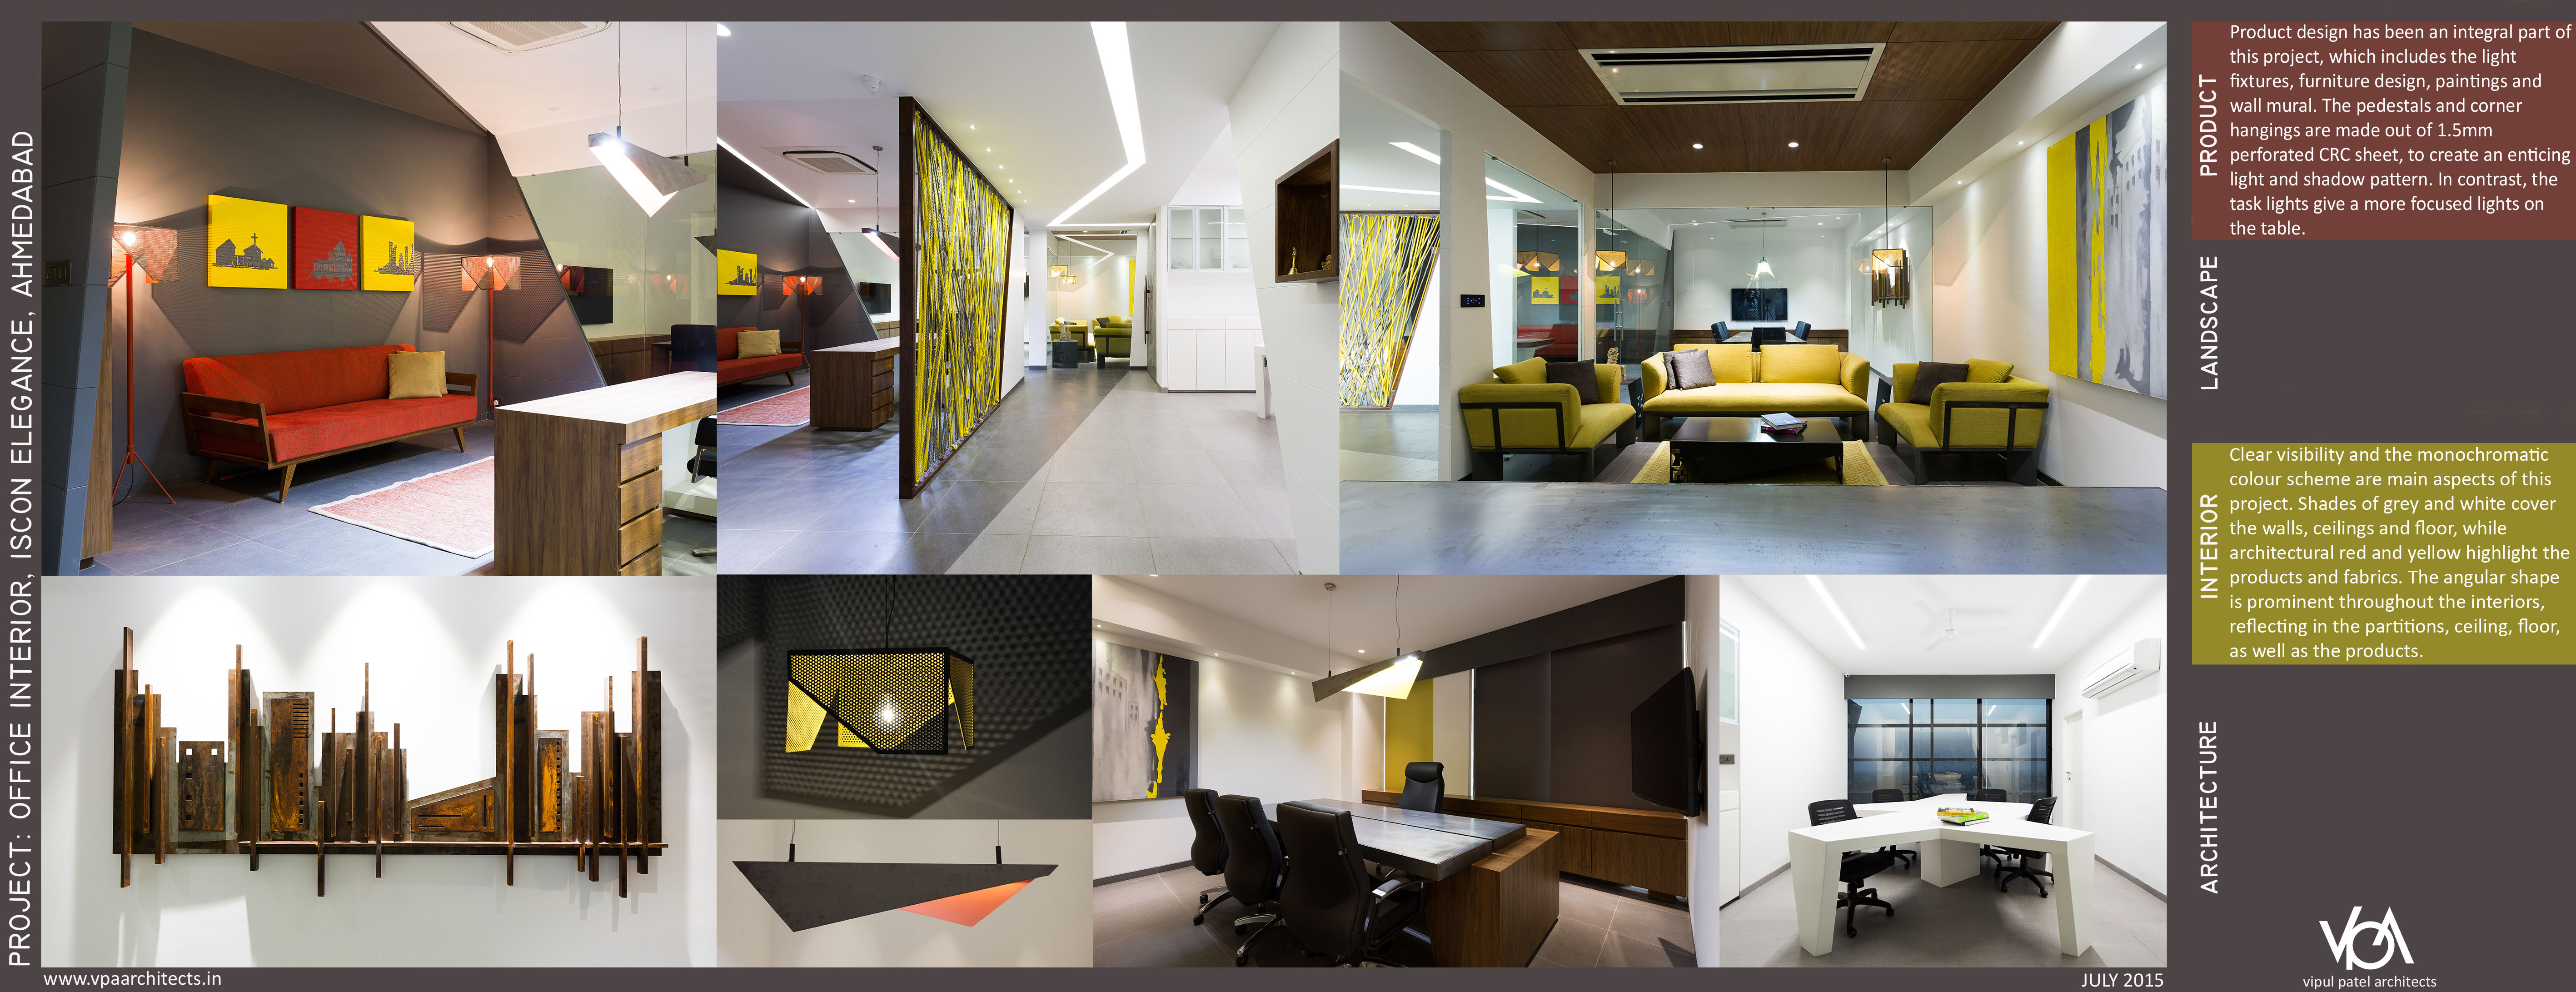 architects office interior. OFFICE INTERIOR · News ARCHITECTURAL EXTENSION LANDSCAPE DESIGN Letter 1 Architects Office Interior